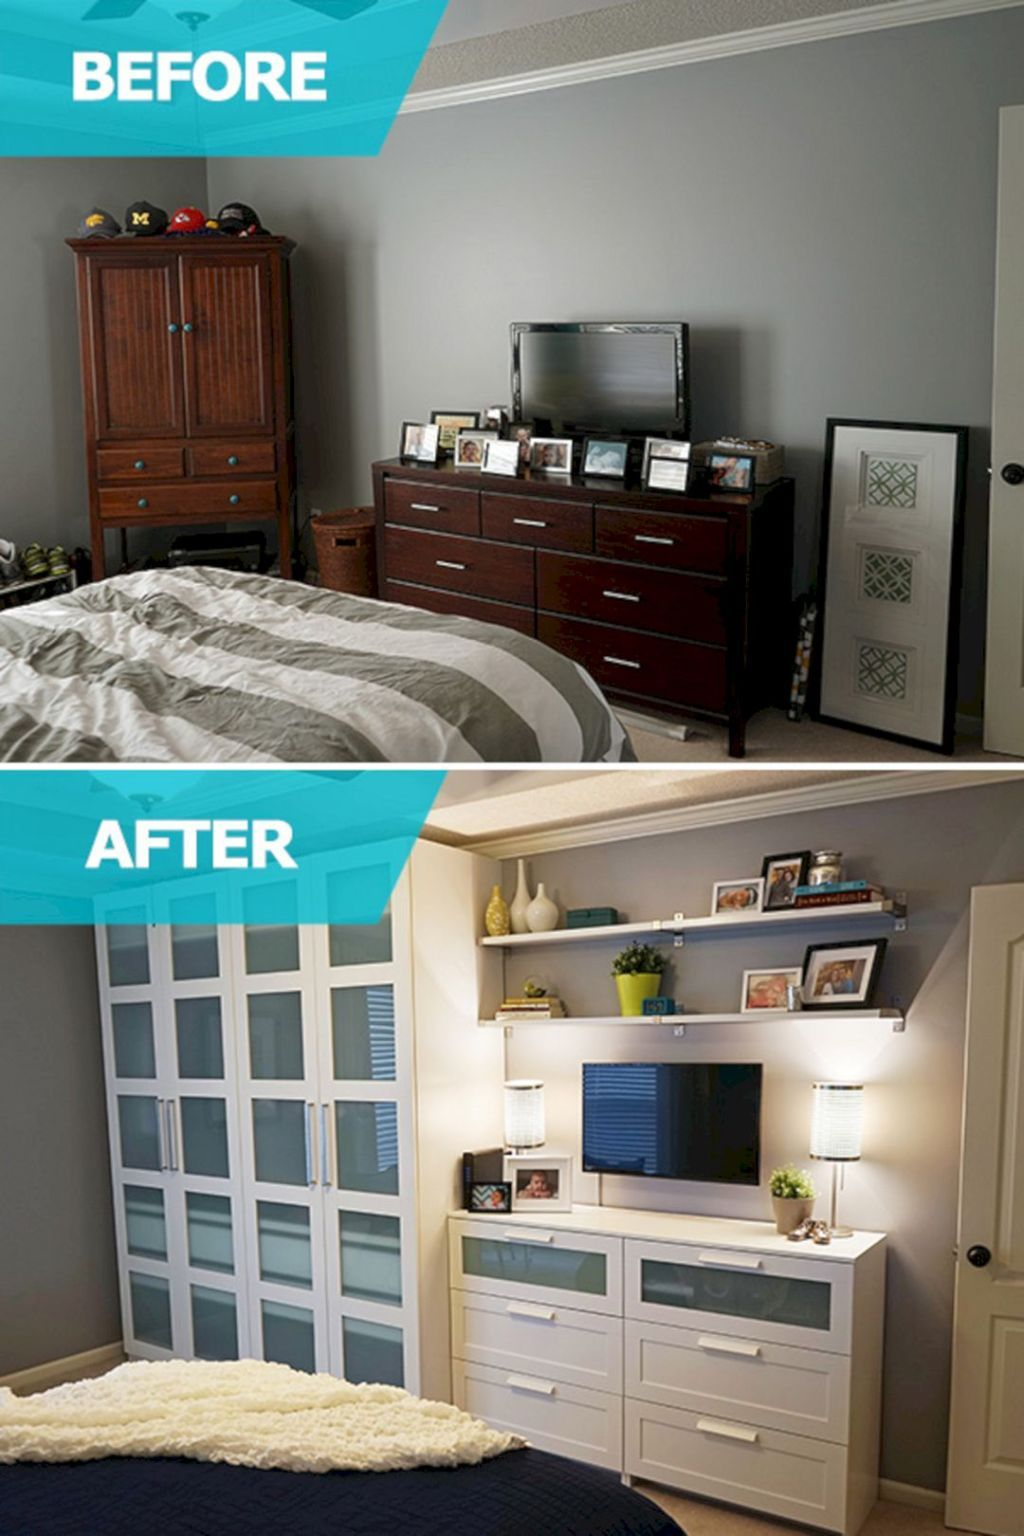 The Best Bedroom Storage Ideas For Small Room Spaces No 80